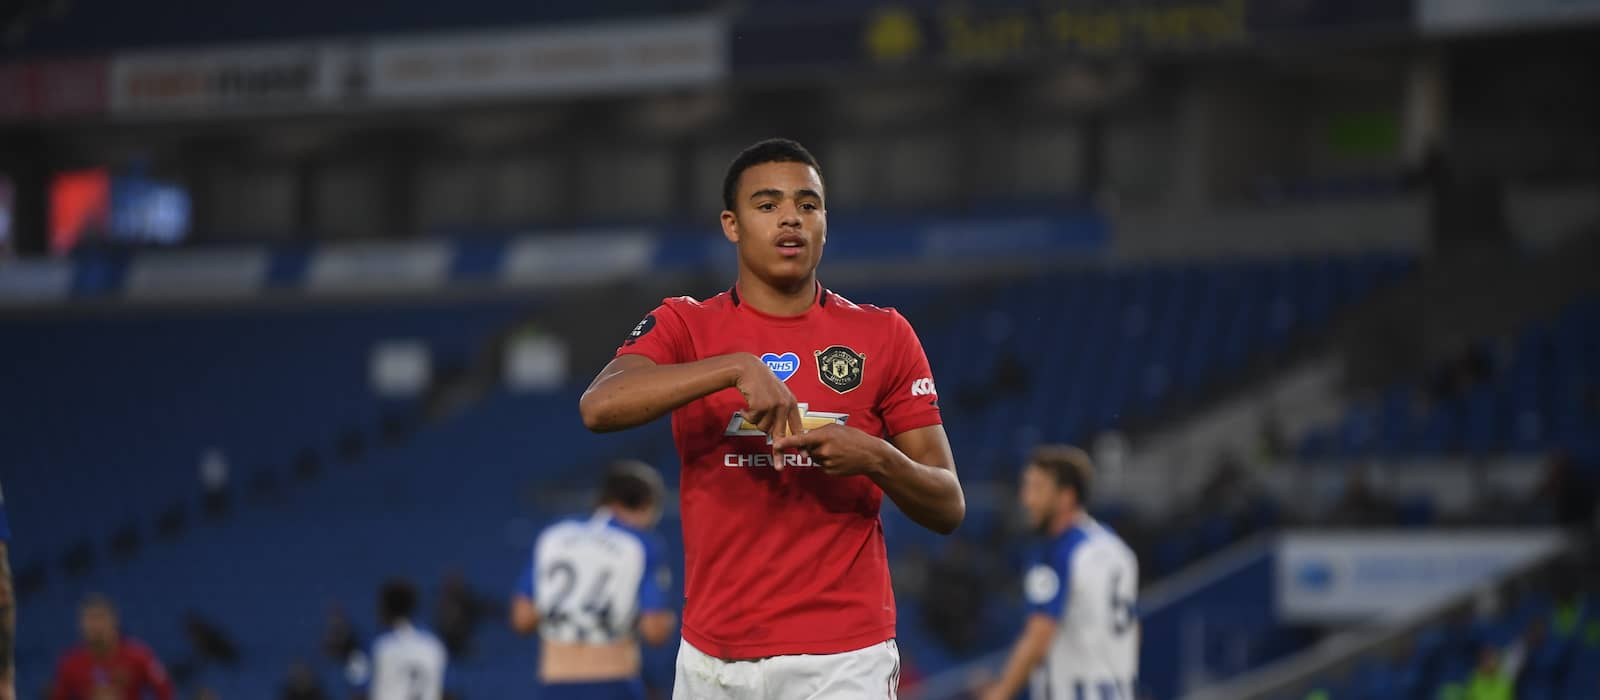 Mason Greenwood a better goalscorer than Cristiano Ronaldo